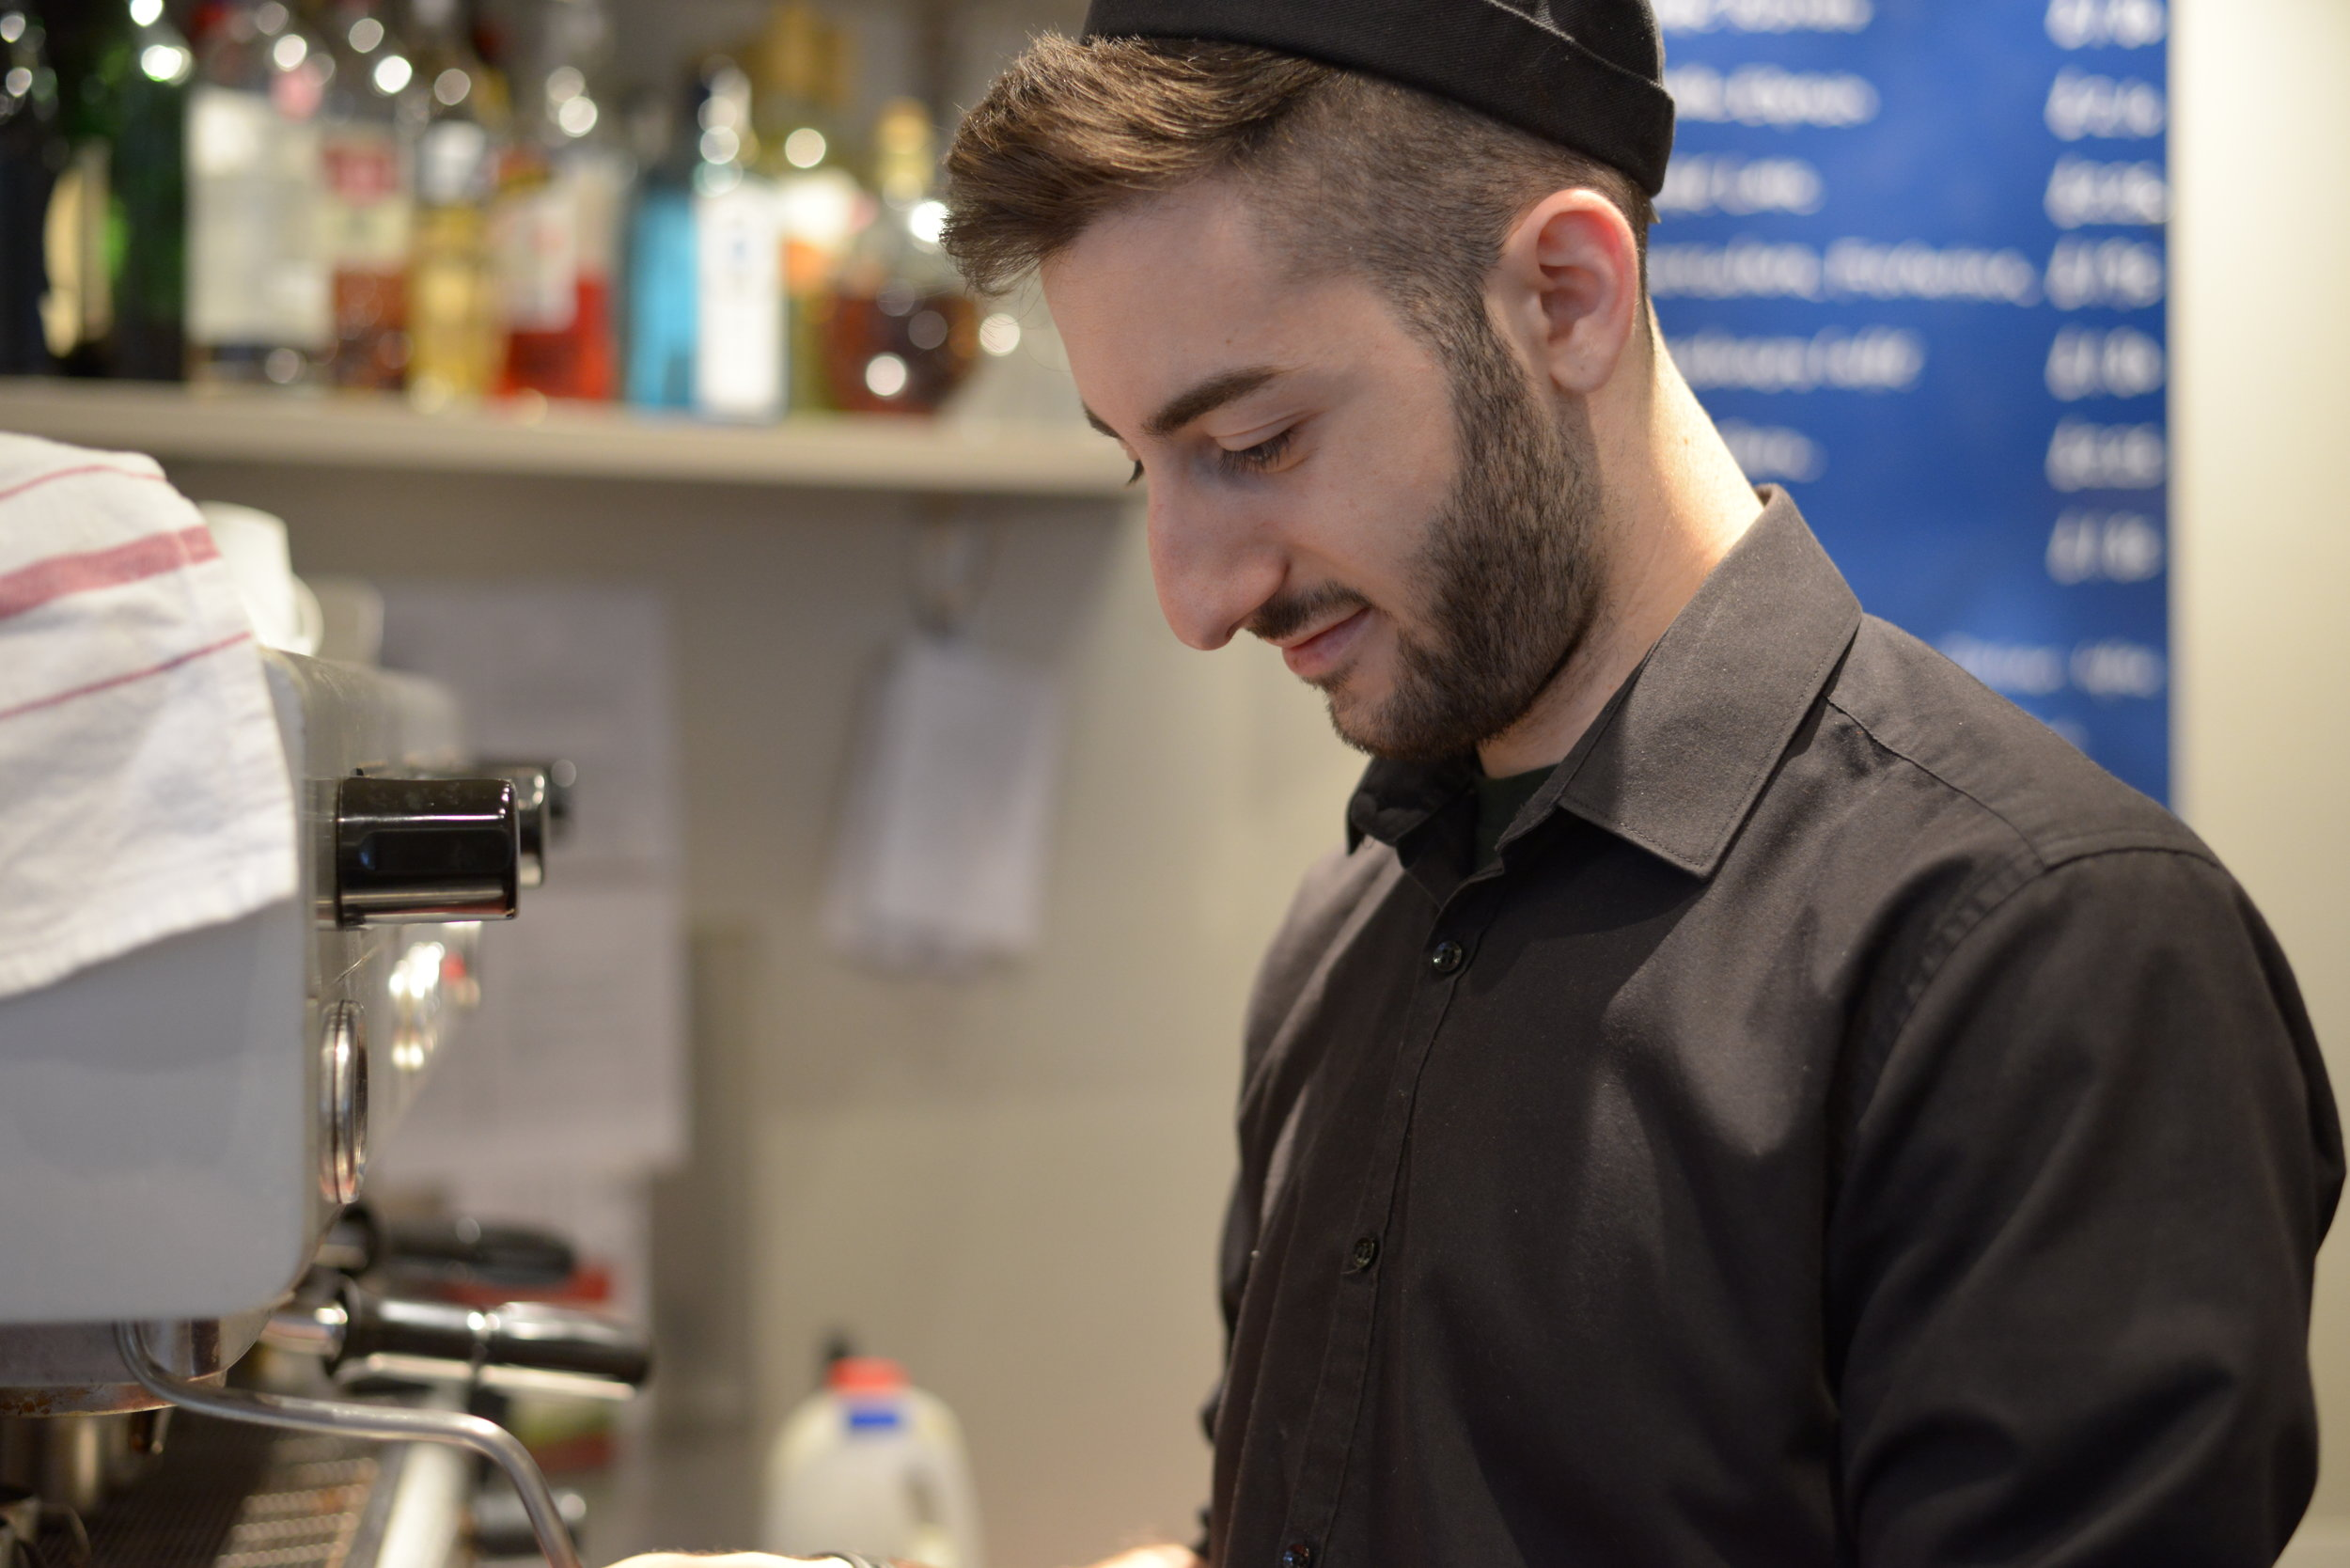 Portrait of barista at work